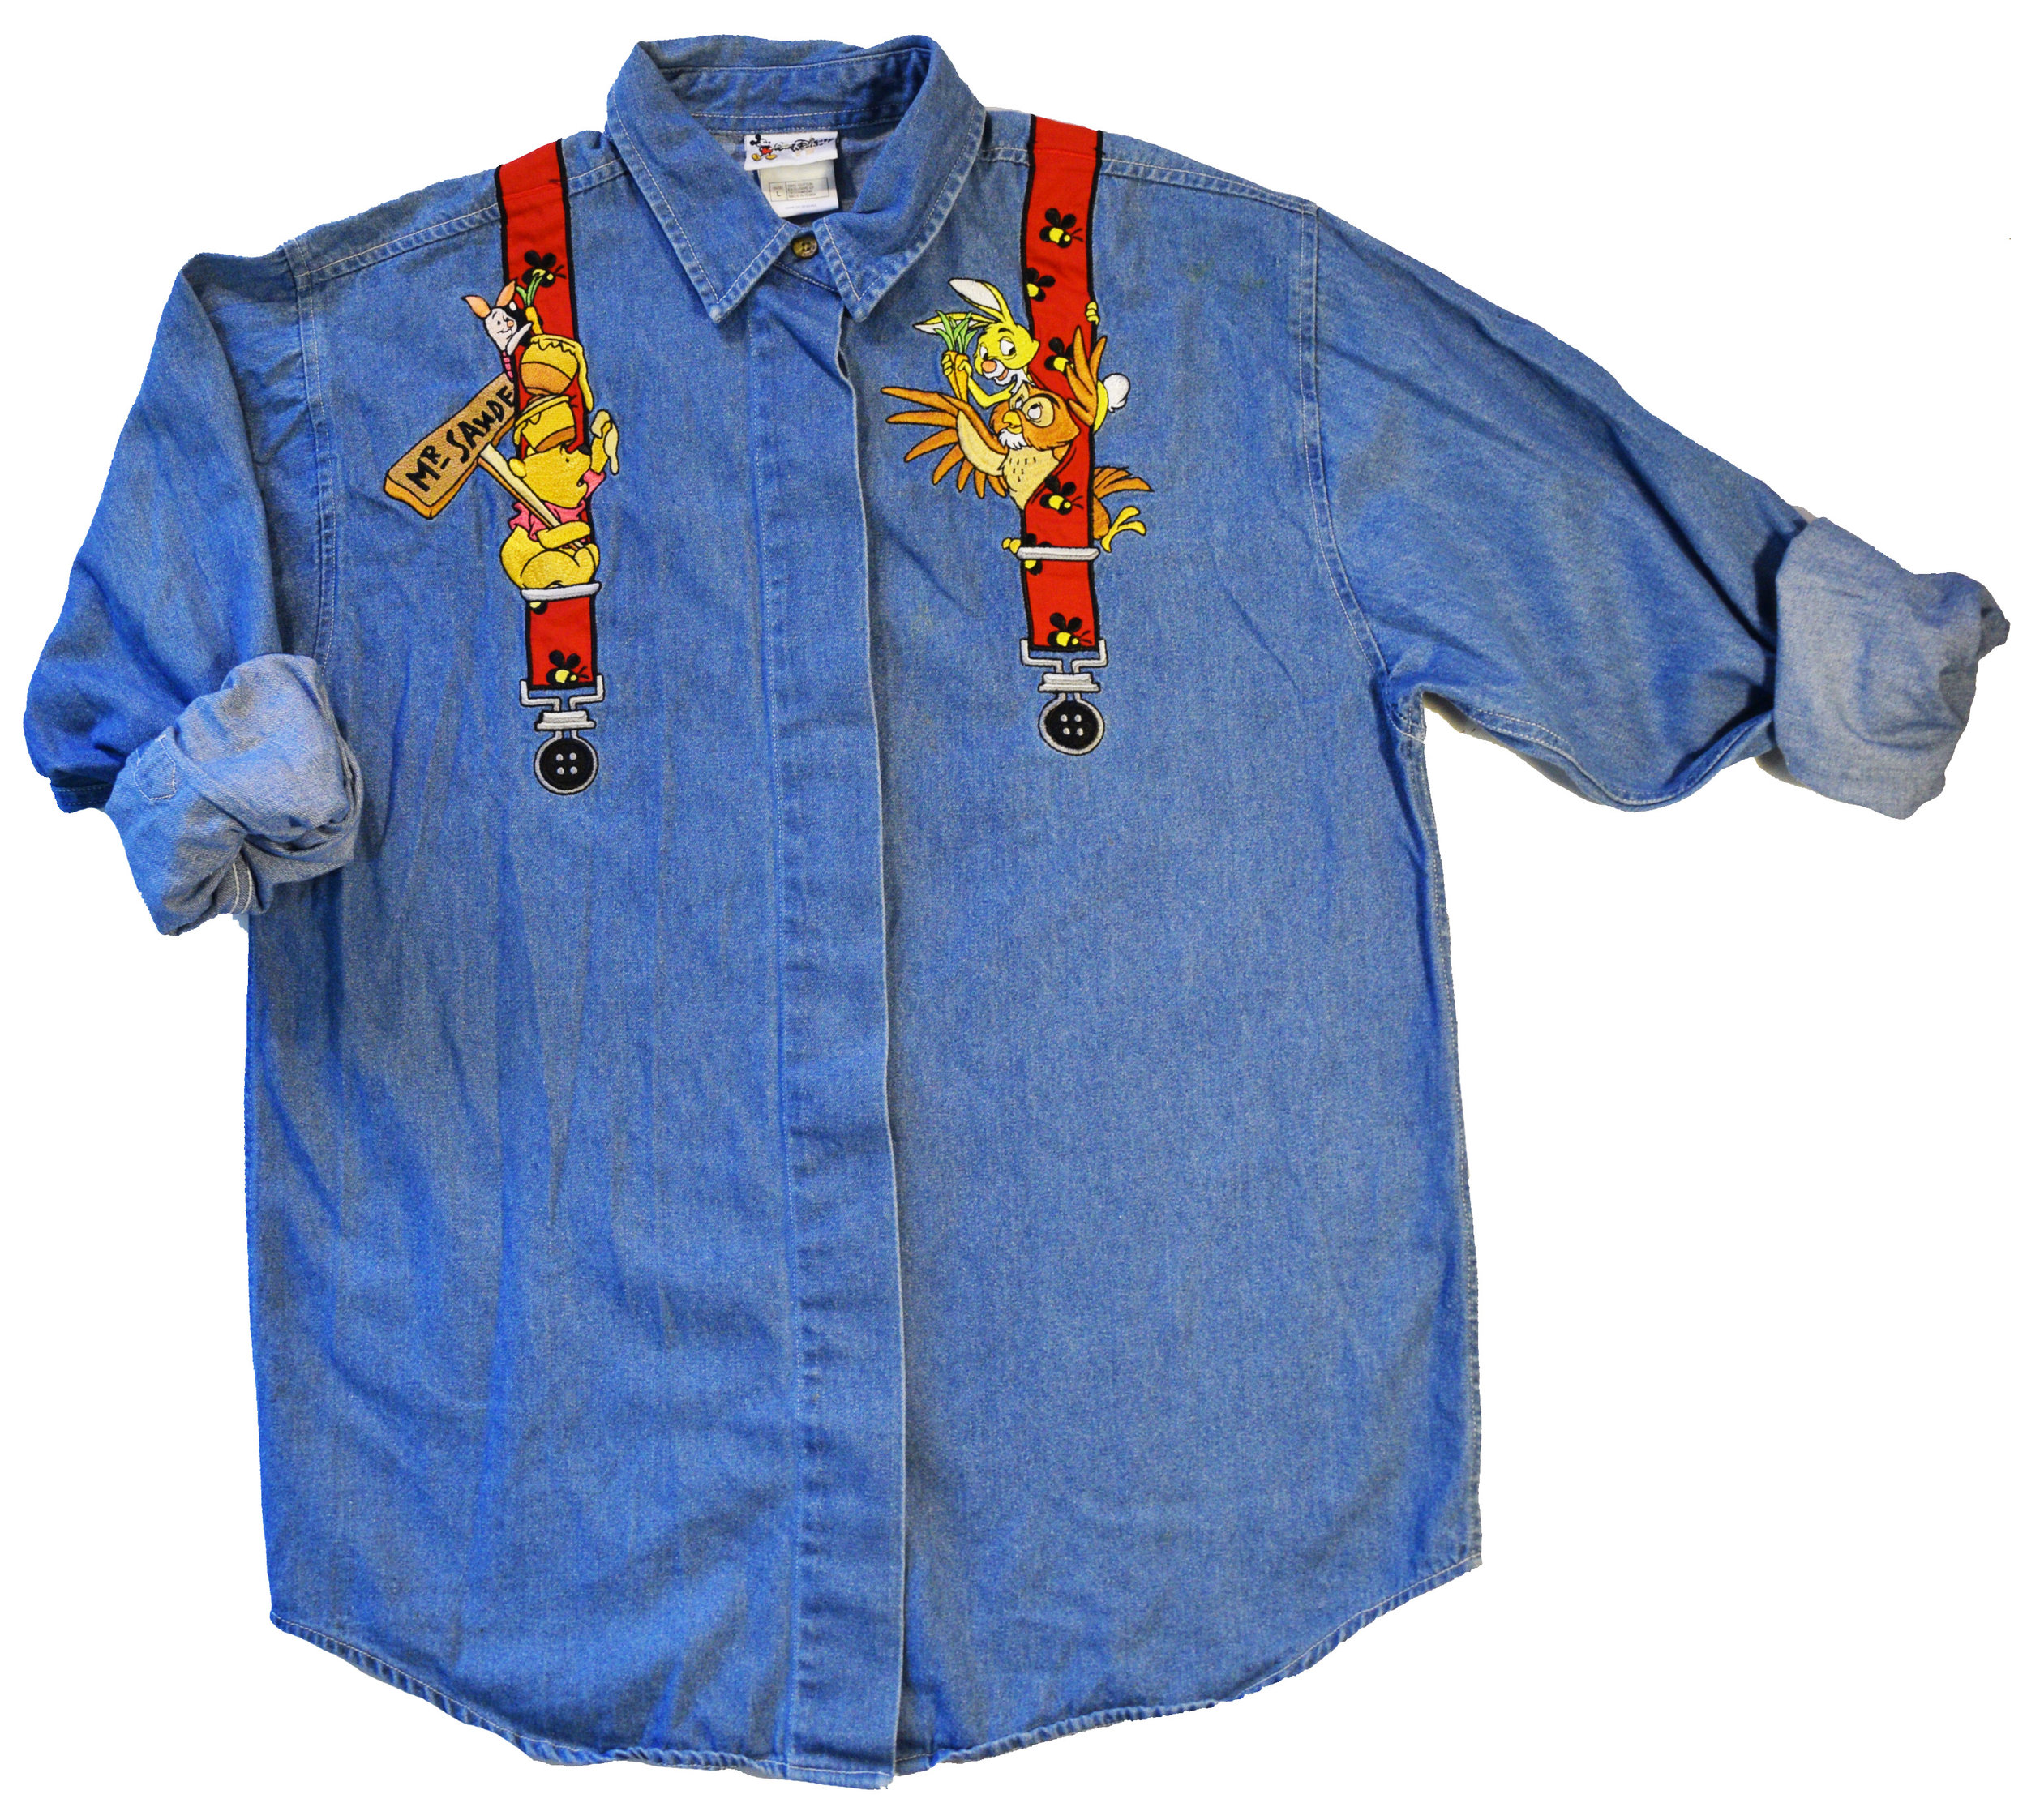 f18a408469 VINTAGE WINNIE THE POOH Embroidered Denim Button Up Shirt - 467 ...